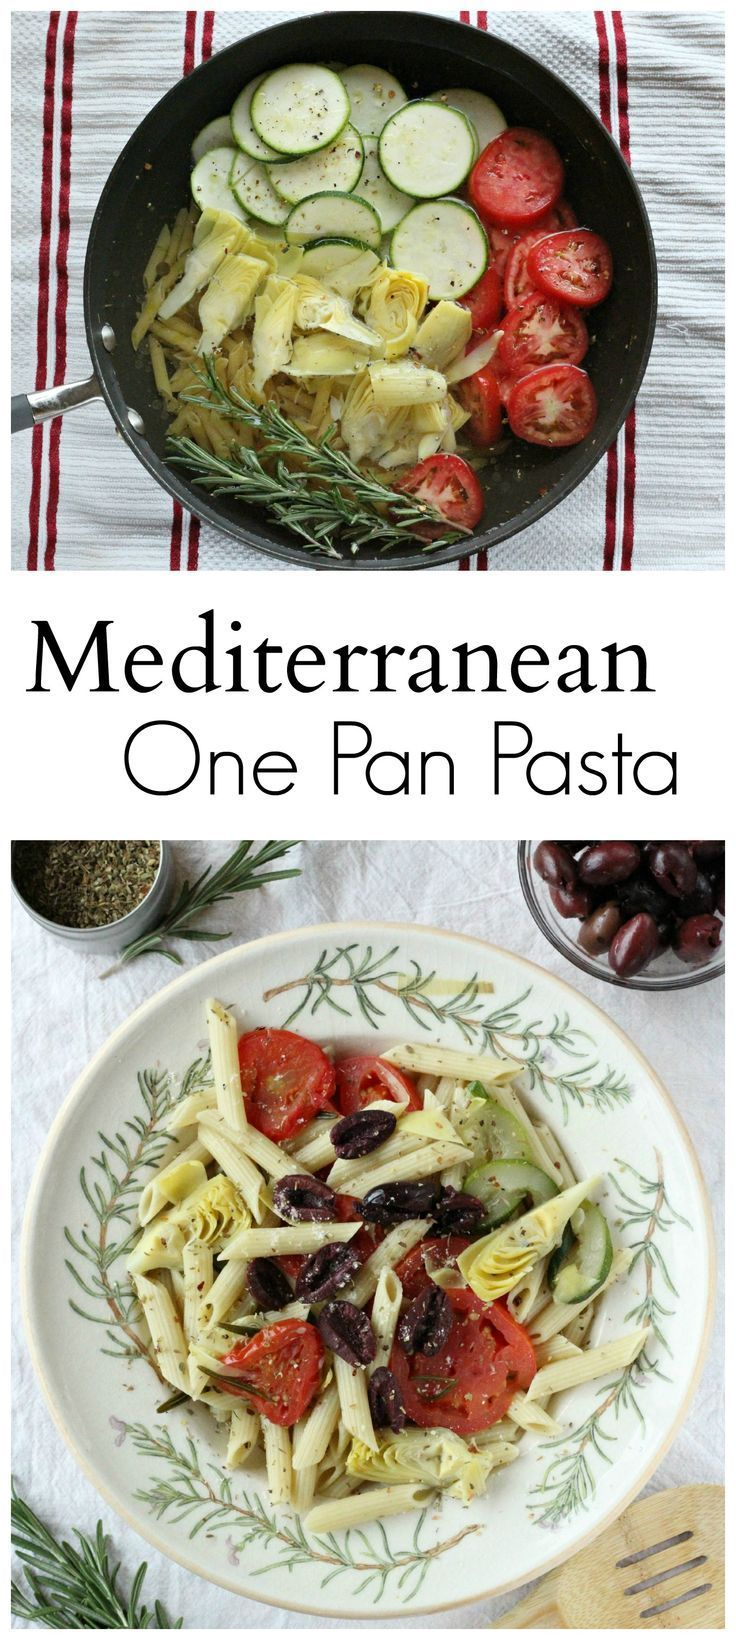 Msg 4 21+ Mediterranean one pan pasta dish, featuring zucchini, tomatoes, artichokes, and Barilla Pronto Pasta. #HolidayPairings #ad